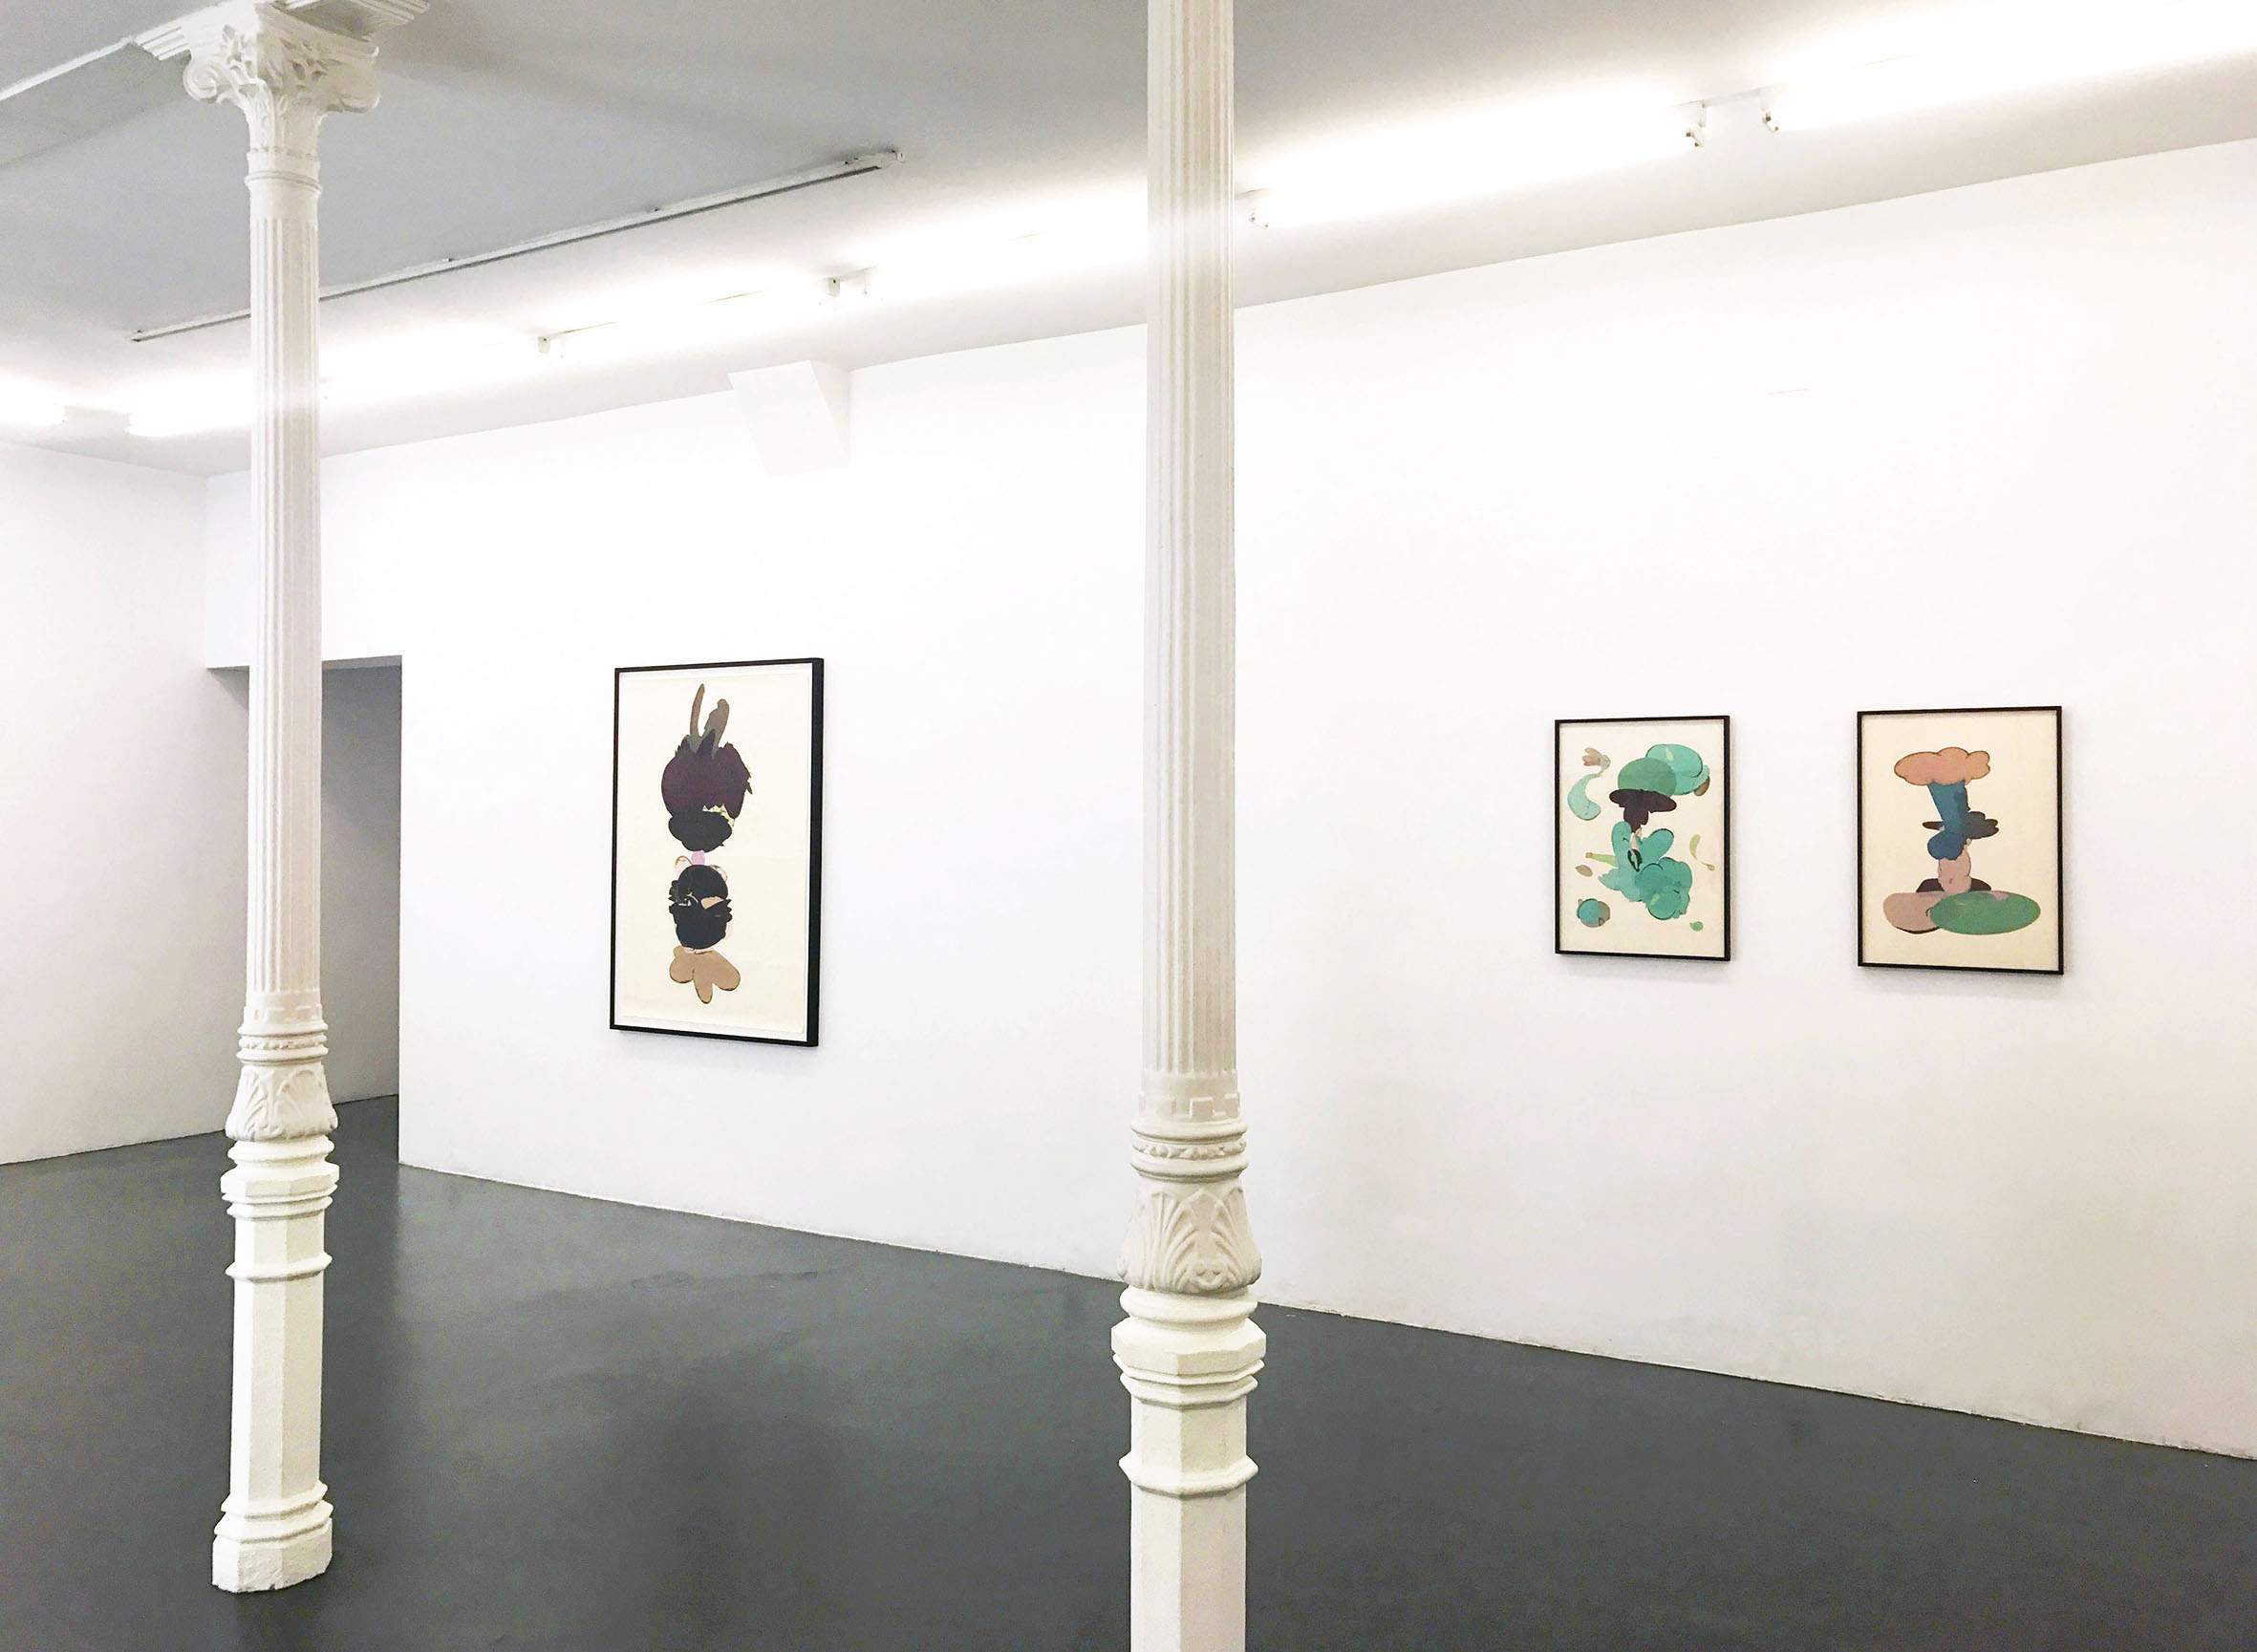 Installation View. F2 Gallery, Madrid, 2017